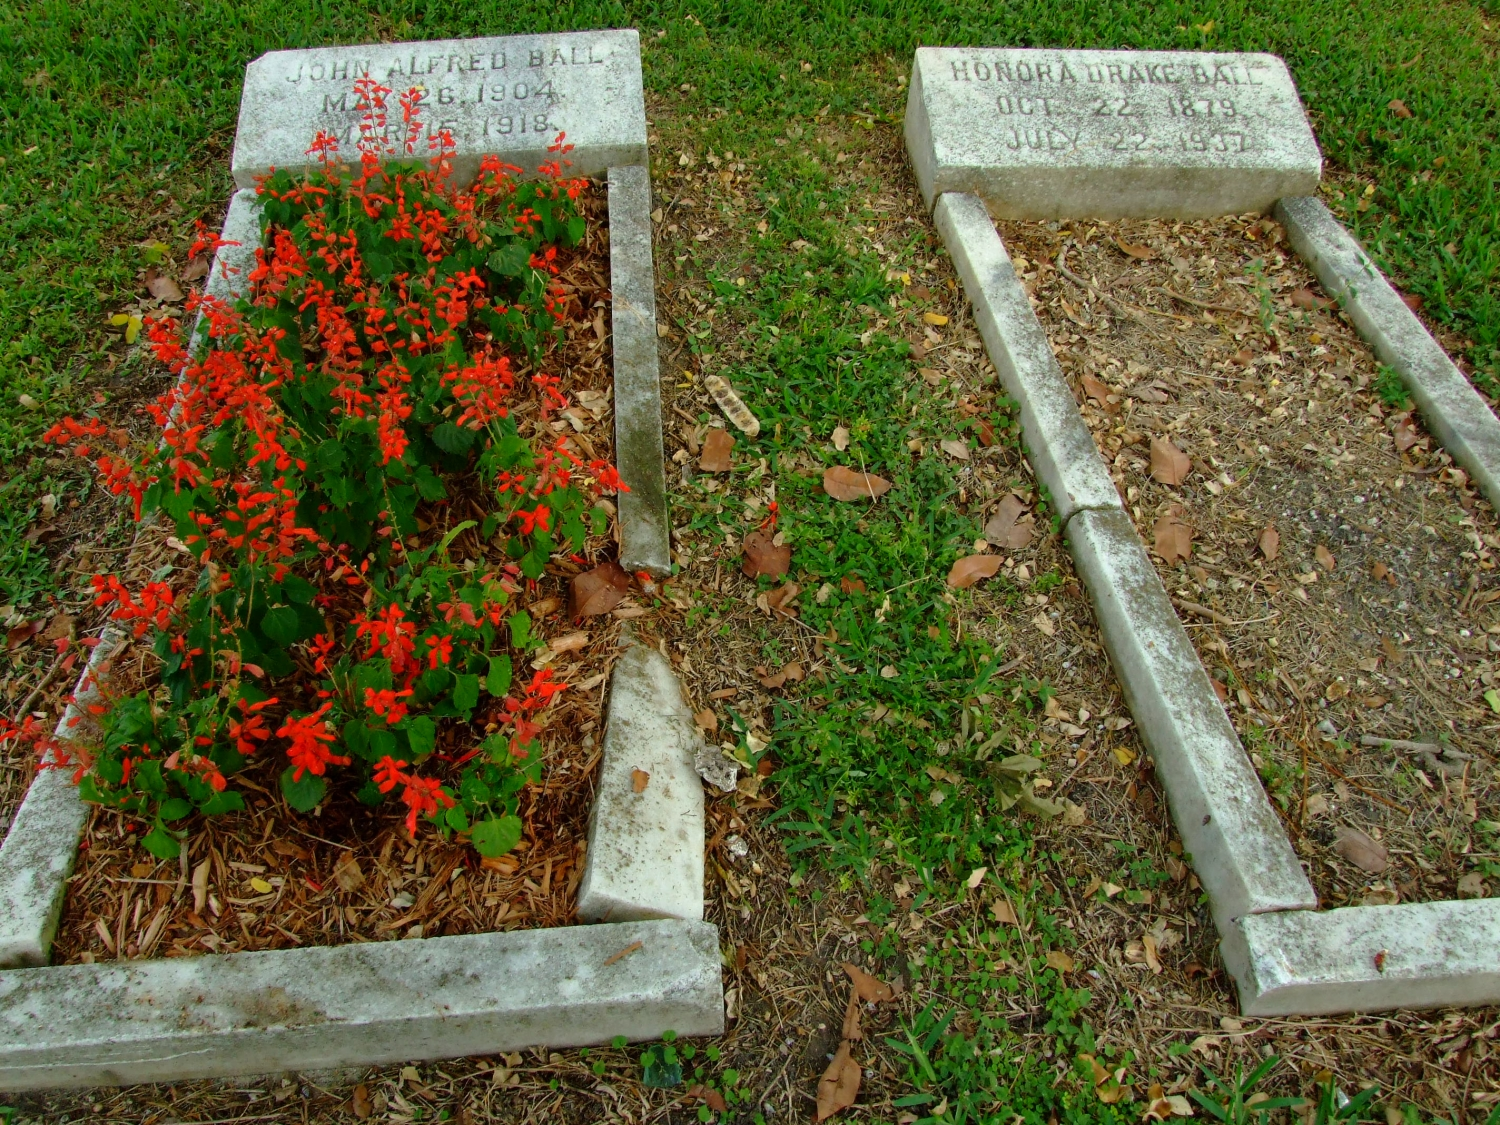 Celebrate Christina Pettersson's Birthday at the Miami City Cemetery